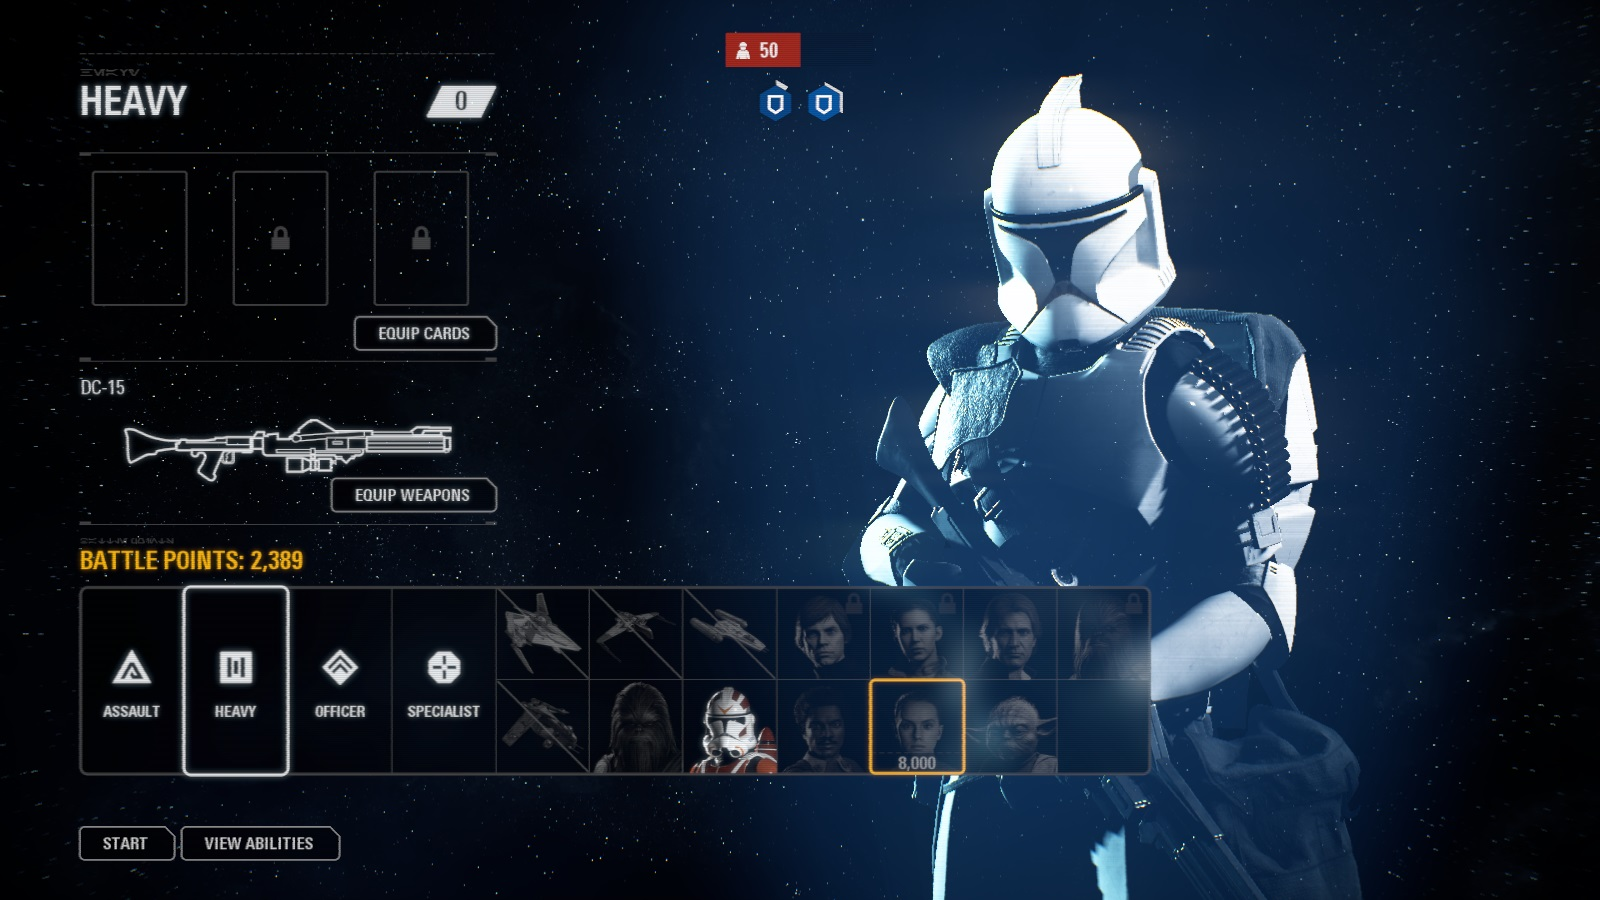 arc troopers coming to star wars battlefront 2 as the new sentinel